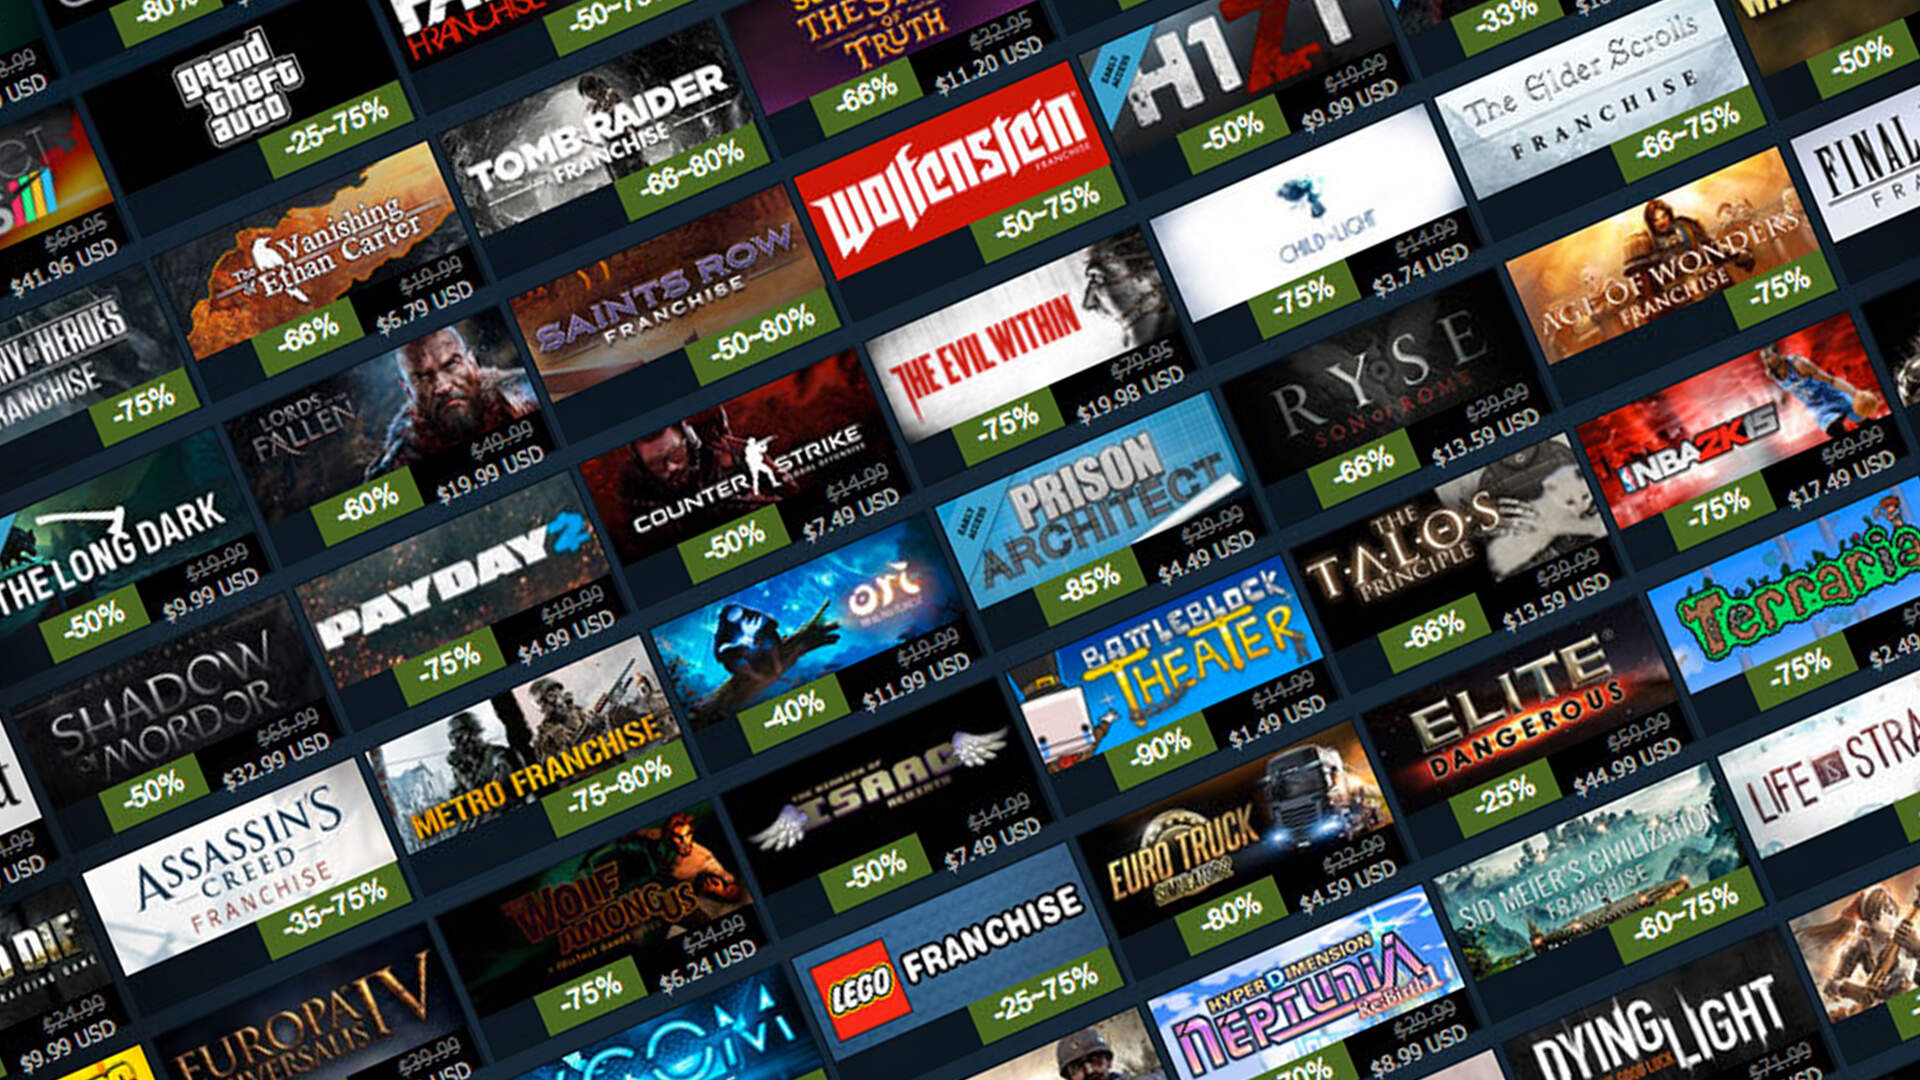 Developers Say Valve's Popular Upcoming Games List is Easily Manipulated